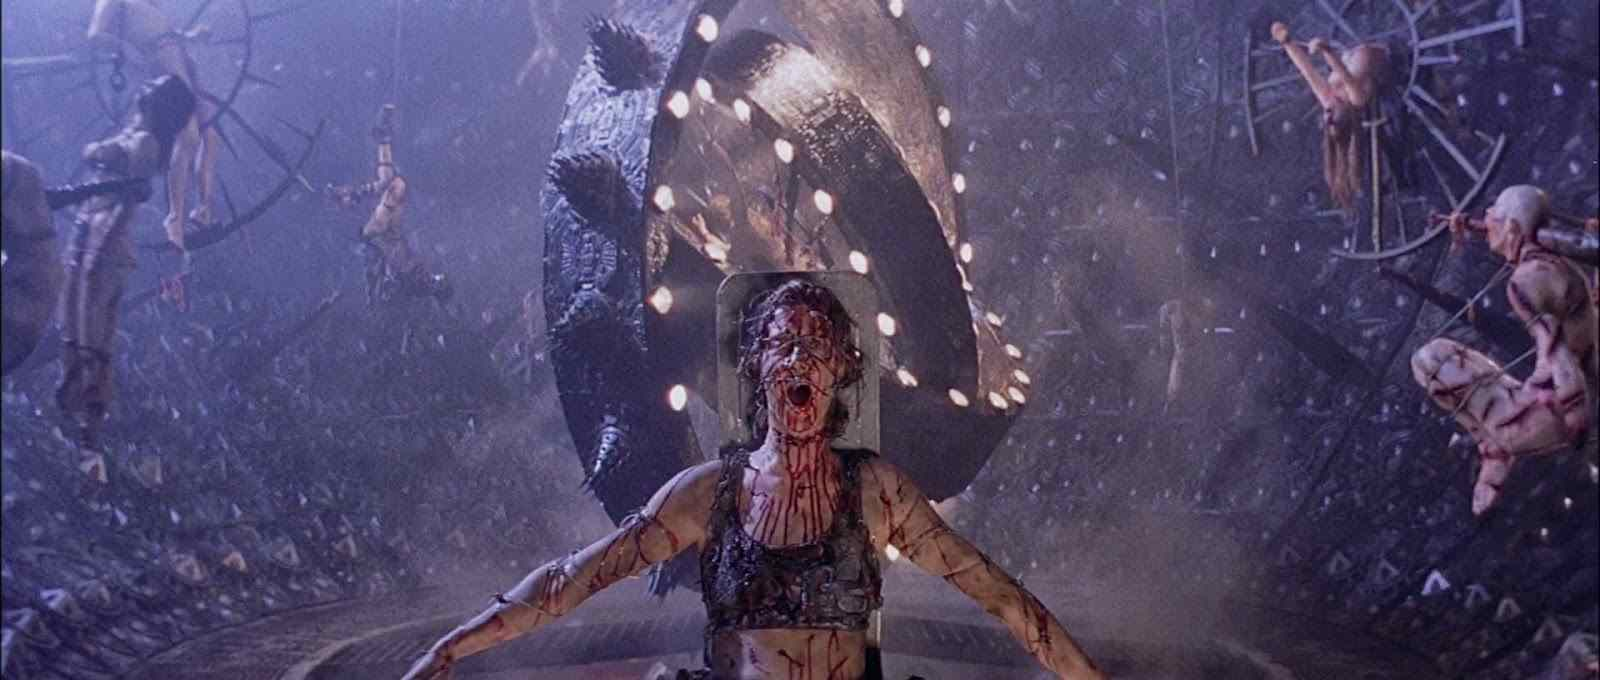 event-horizon-movie Hellraiser